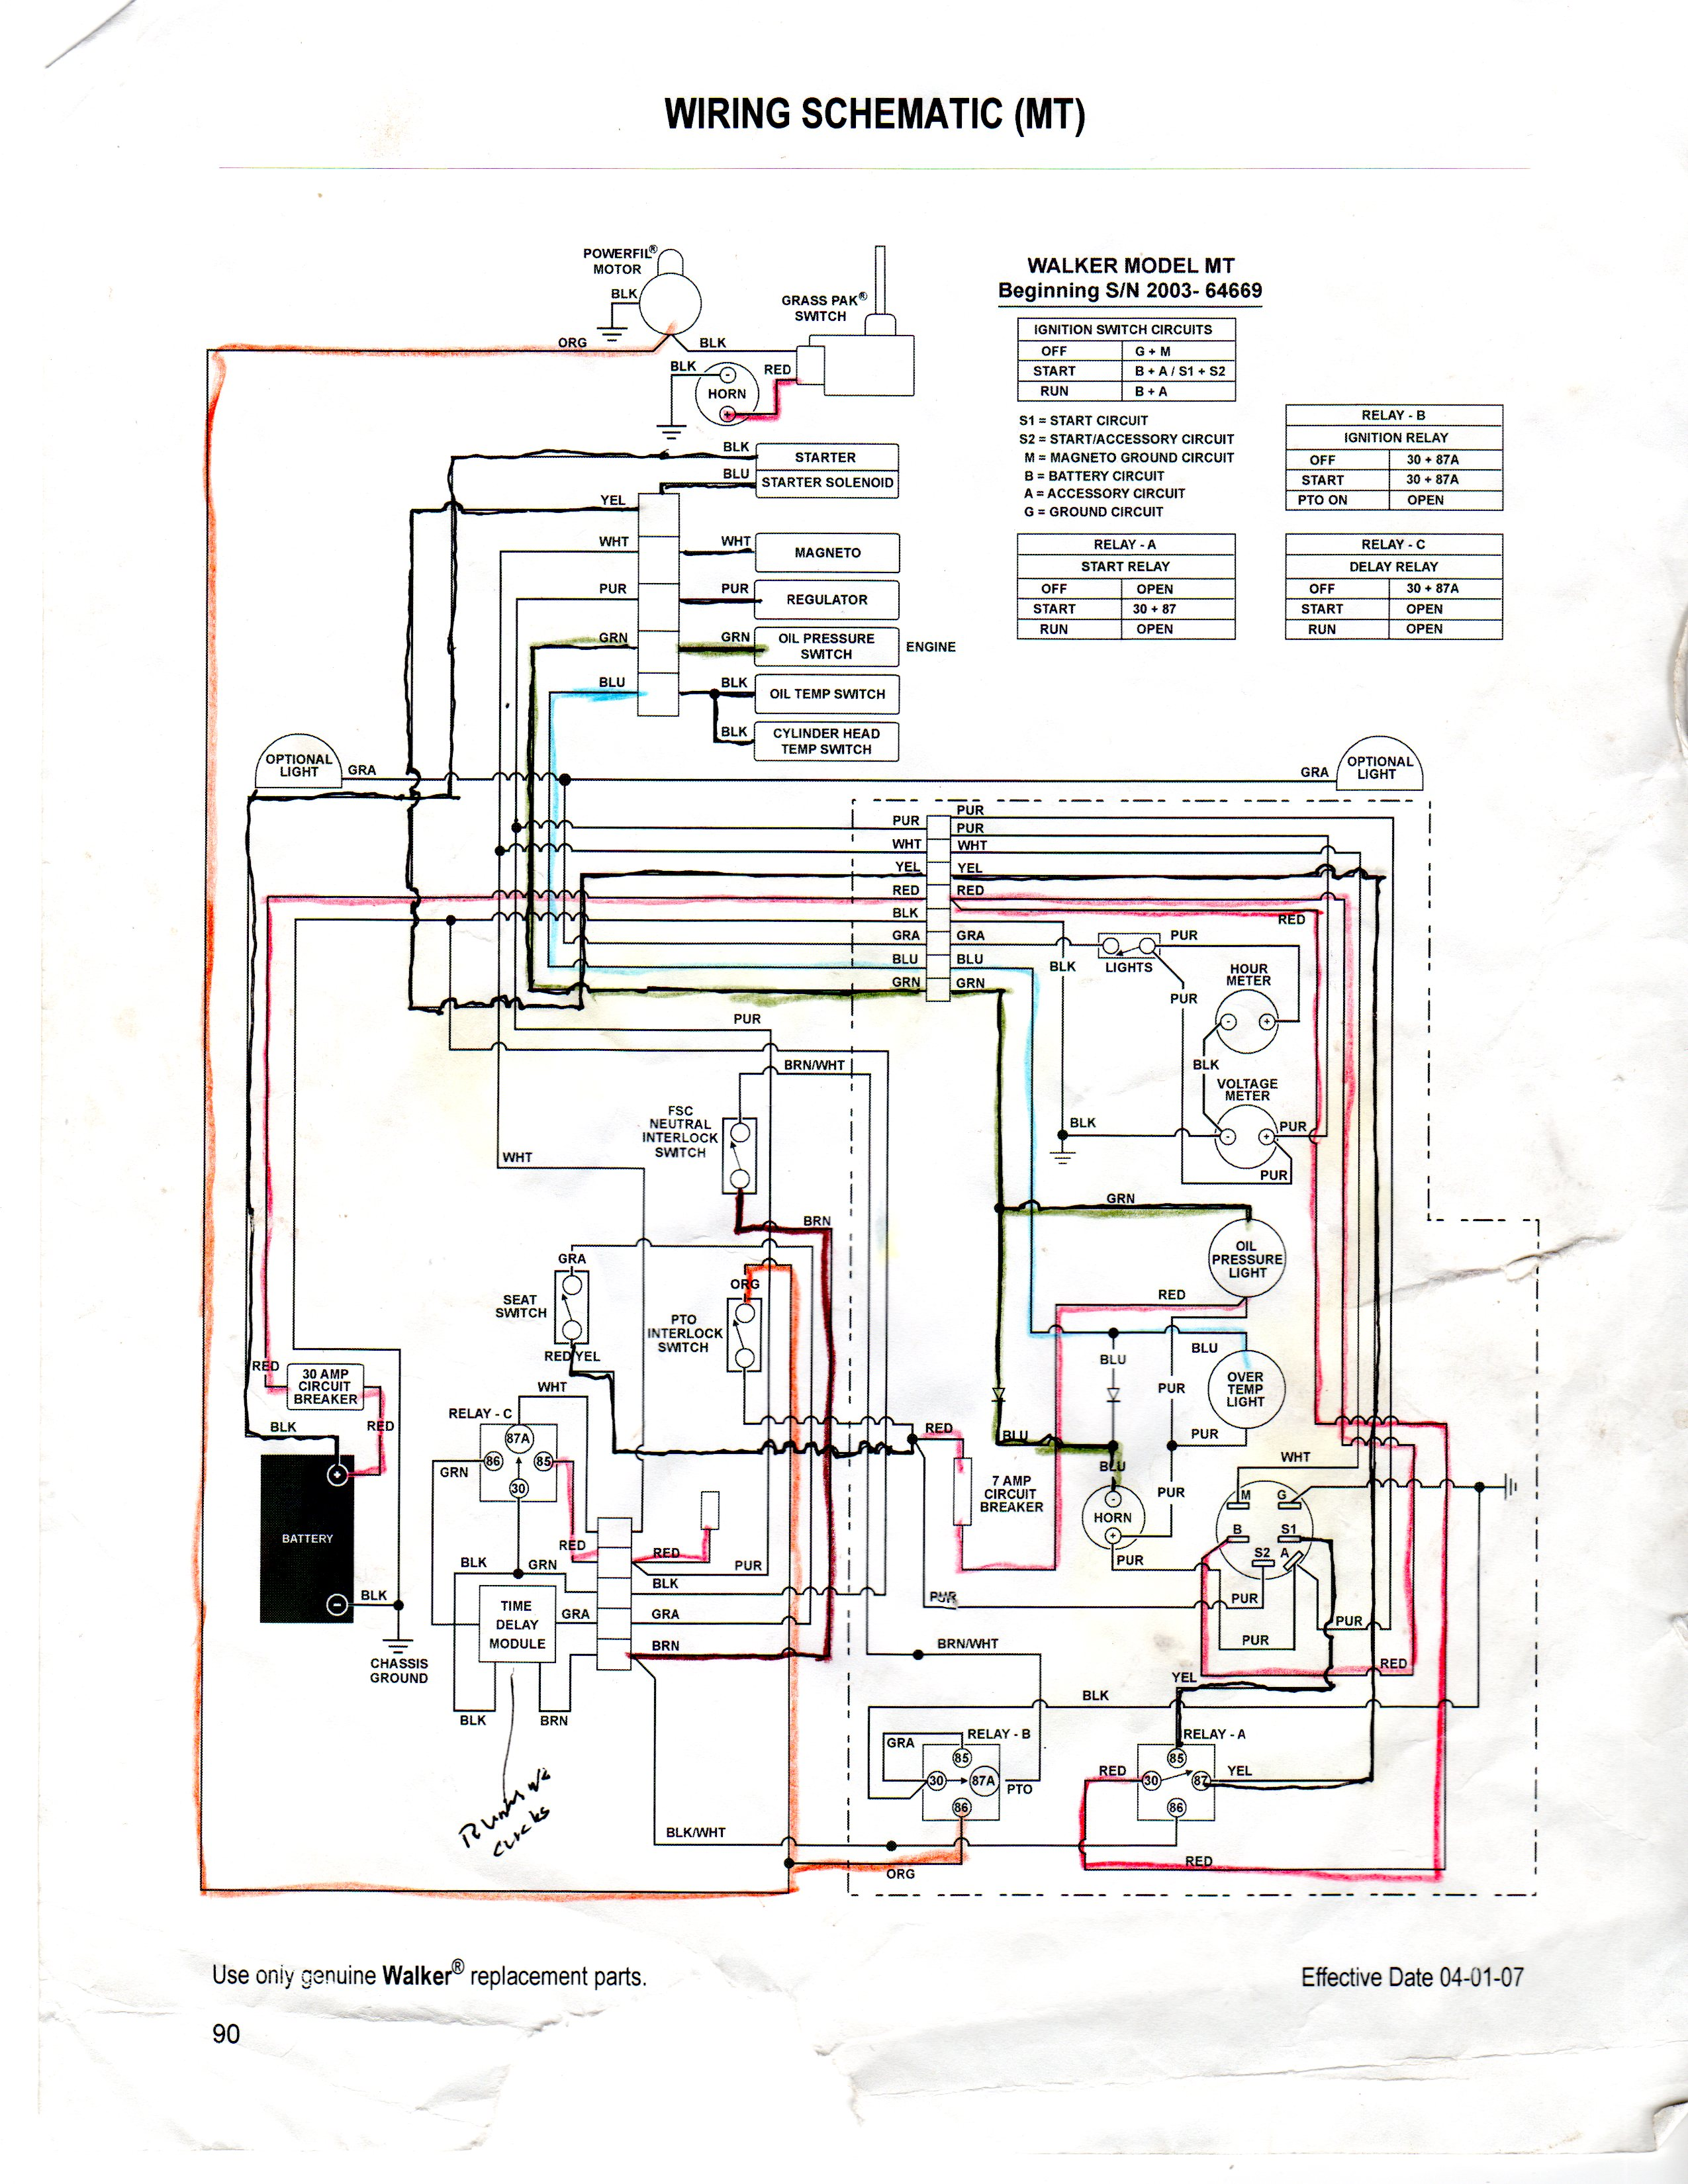 Sltx 1054 Cub Cadet Schematic Engine Control Wiring Diagram For Ltx 1046 33 1050 Fuses